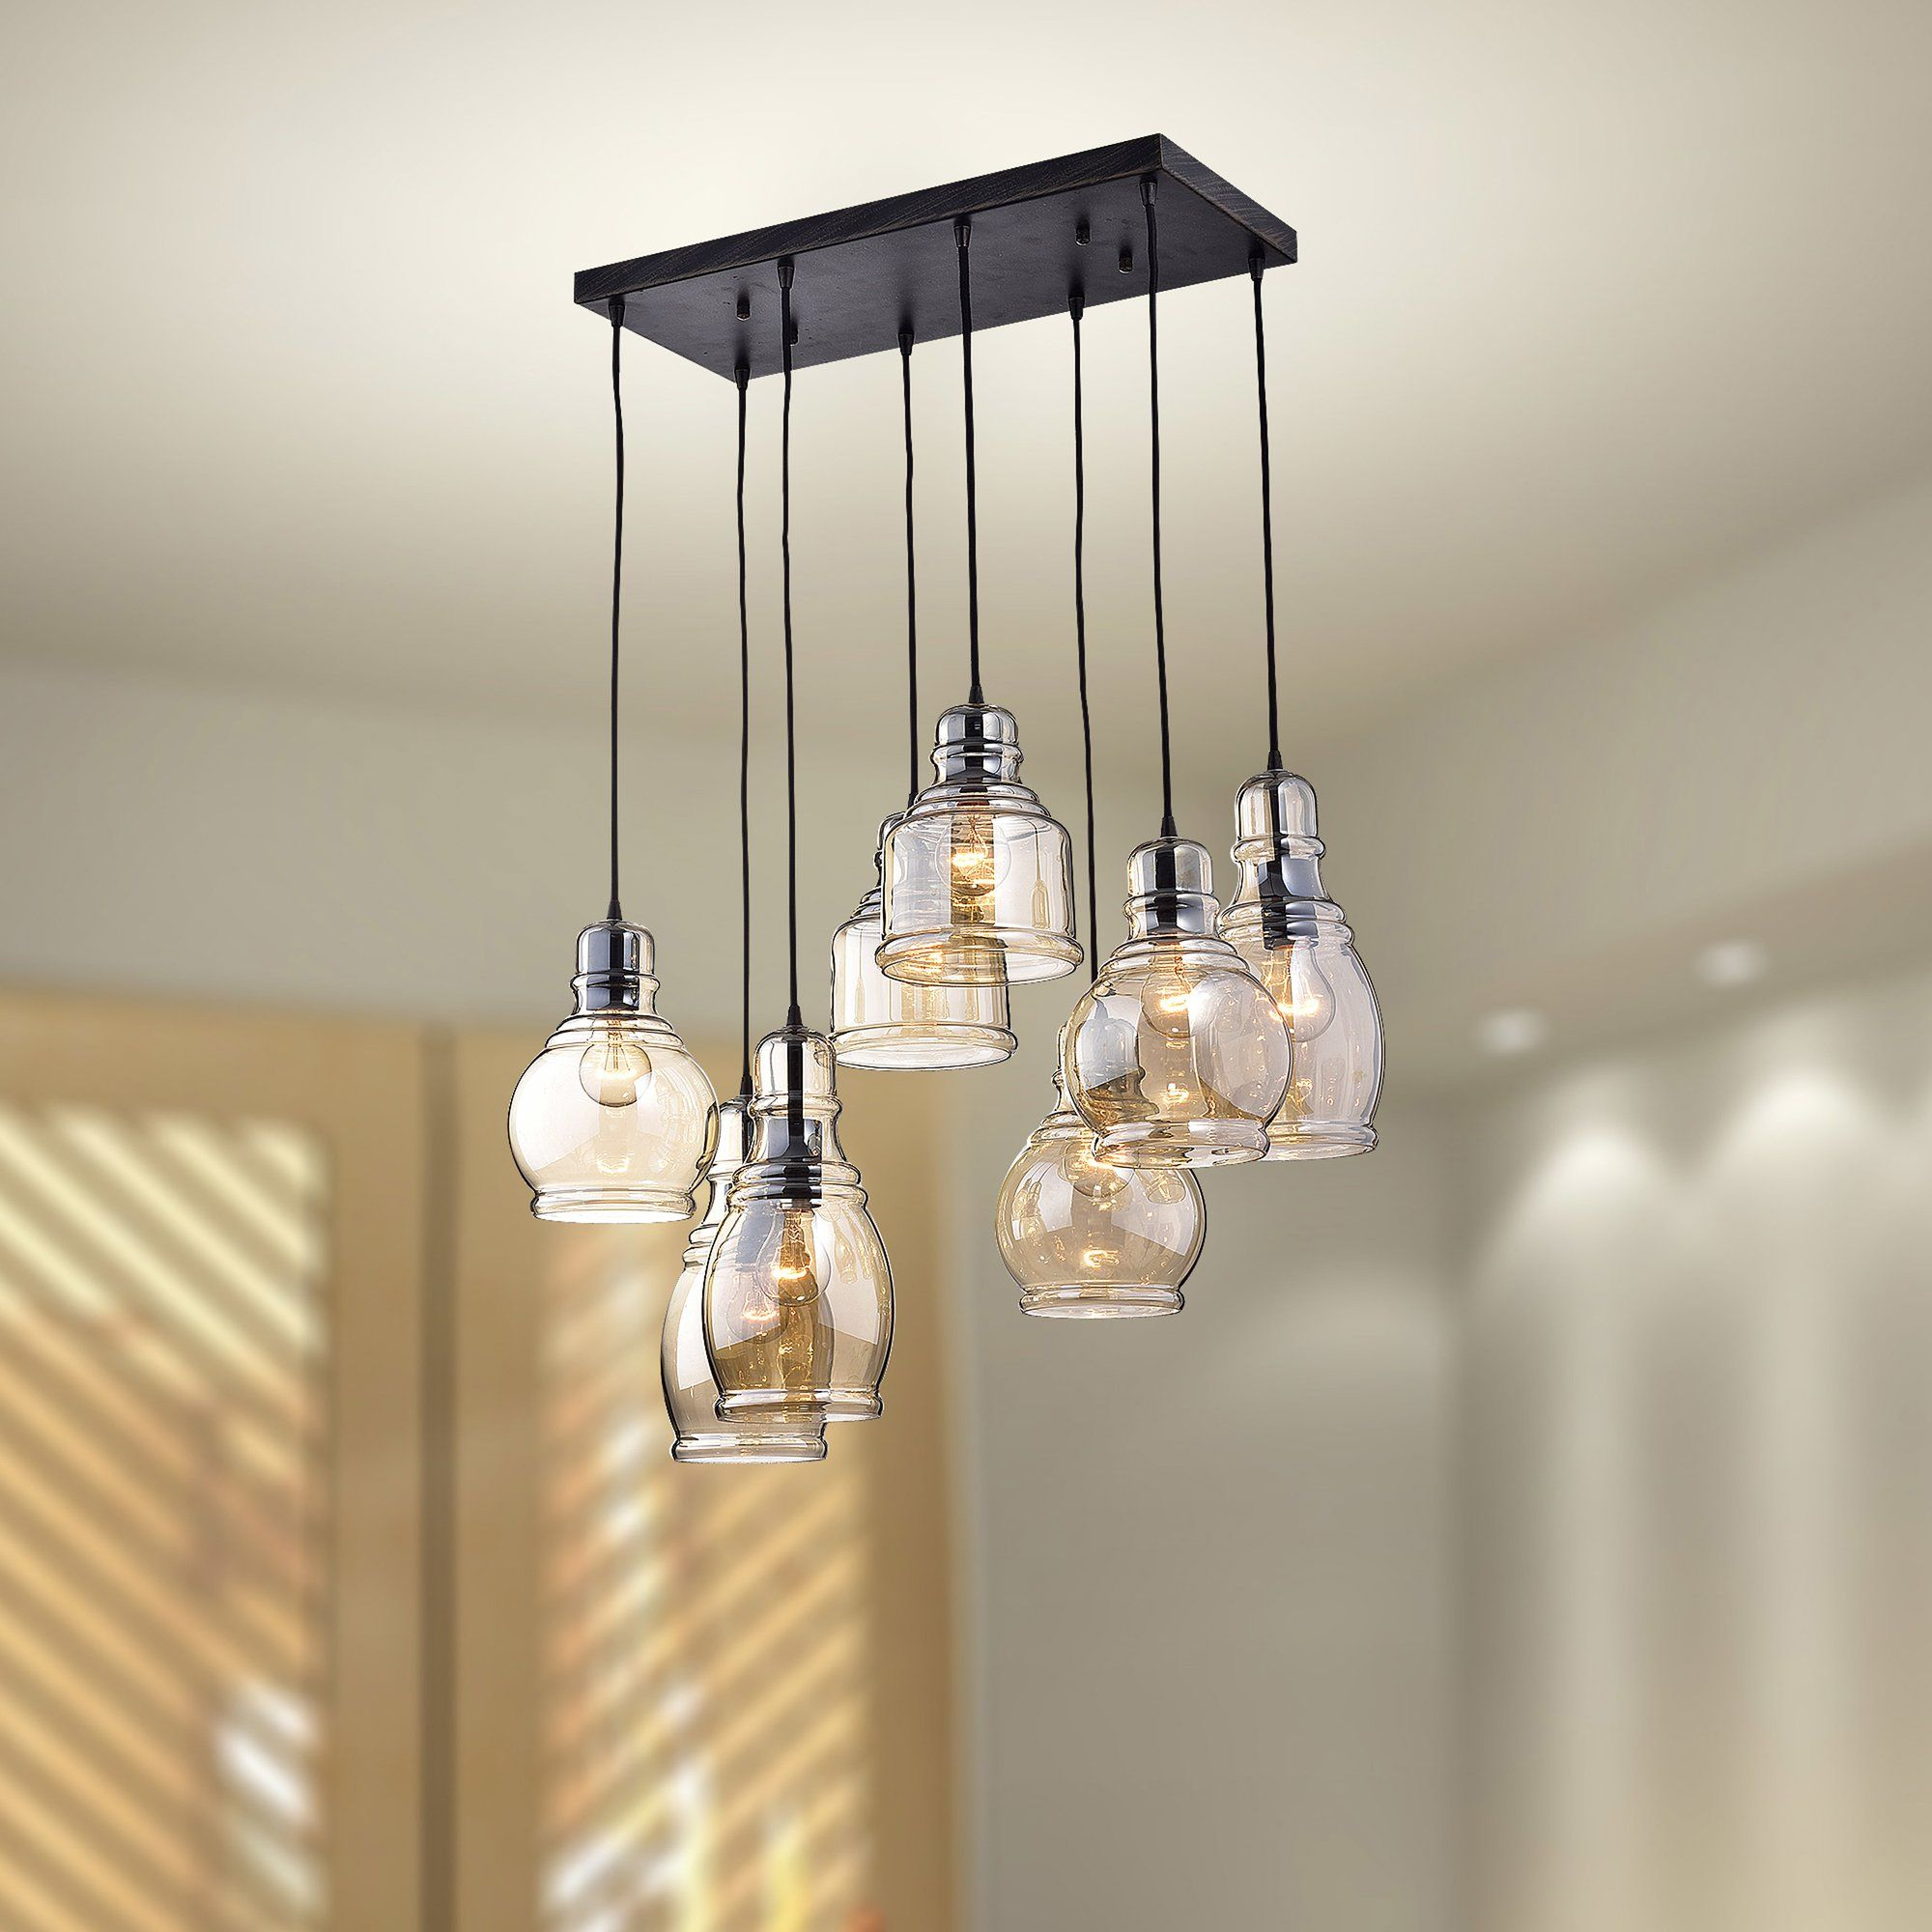 Mariana Cognac Glass 8Light Cascade Pendant Glass